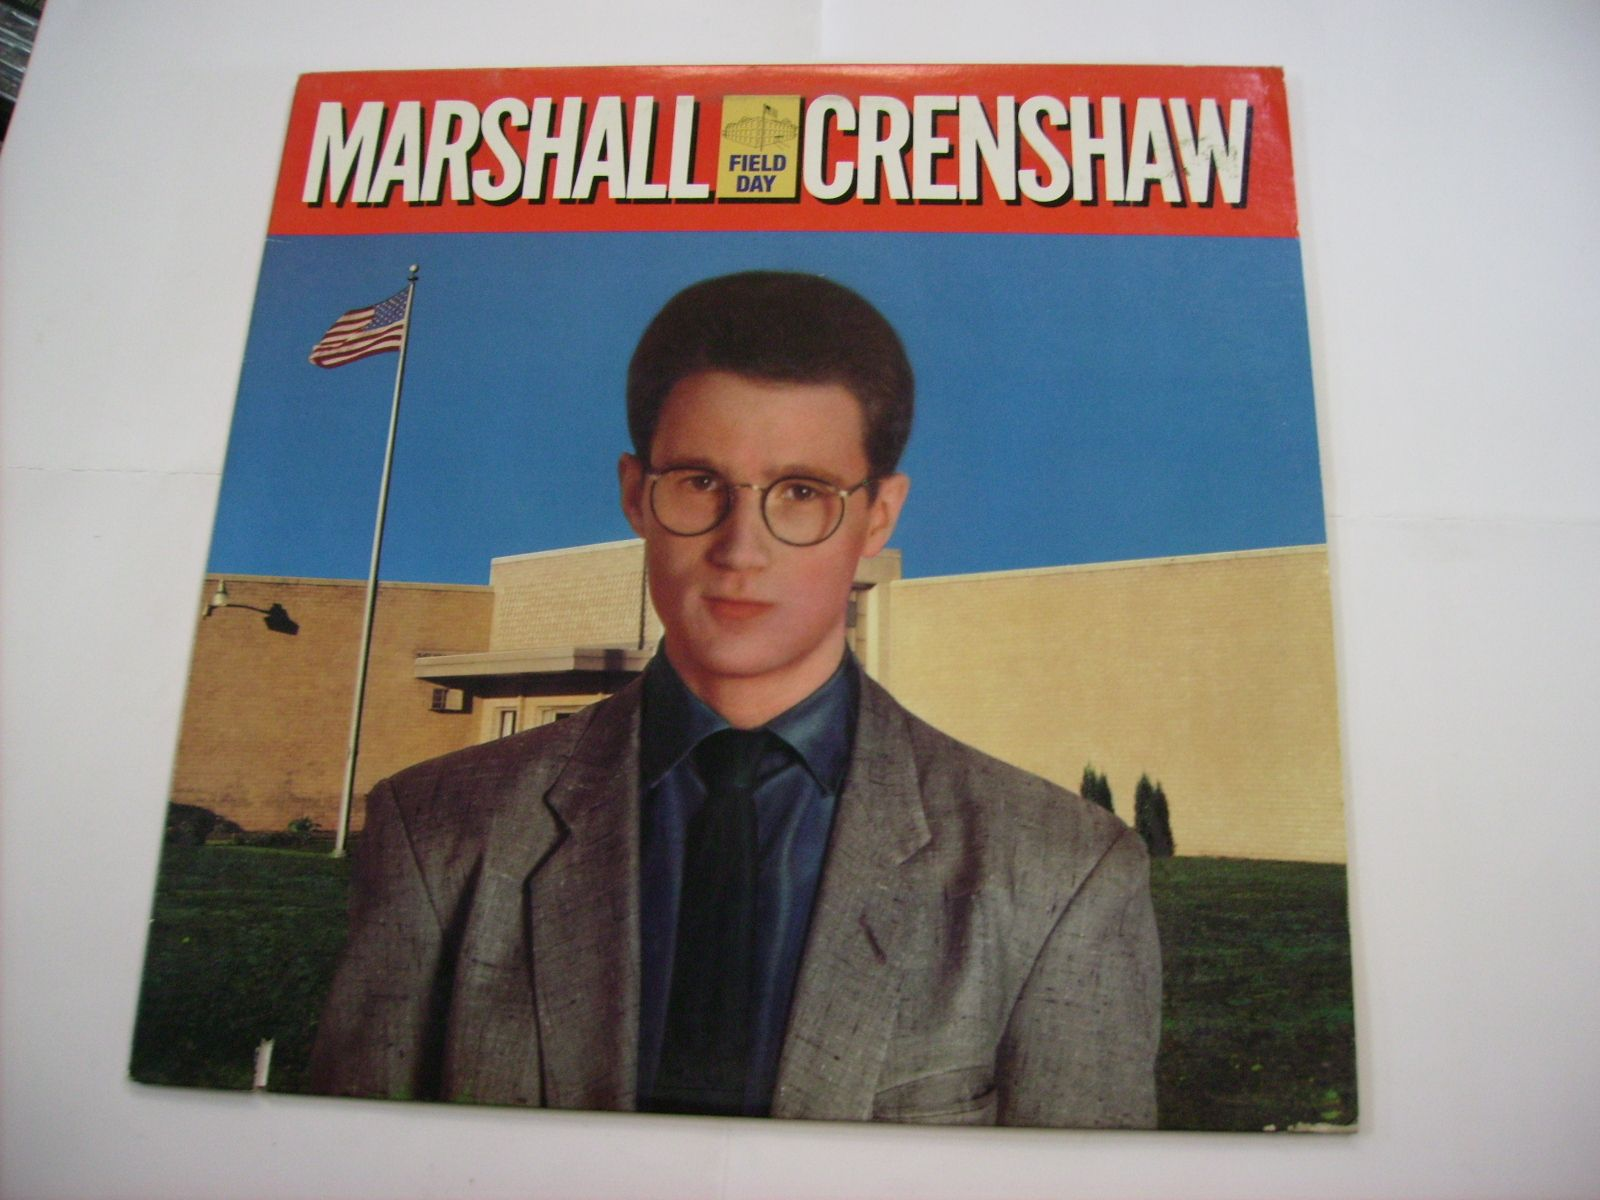 Marshall Crenshaw Field Day Records Lps Vinyl And Cds